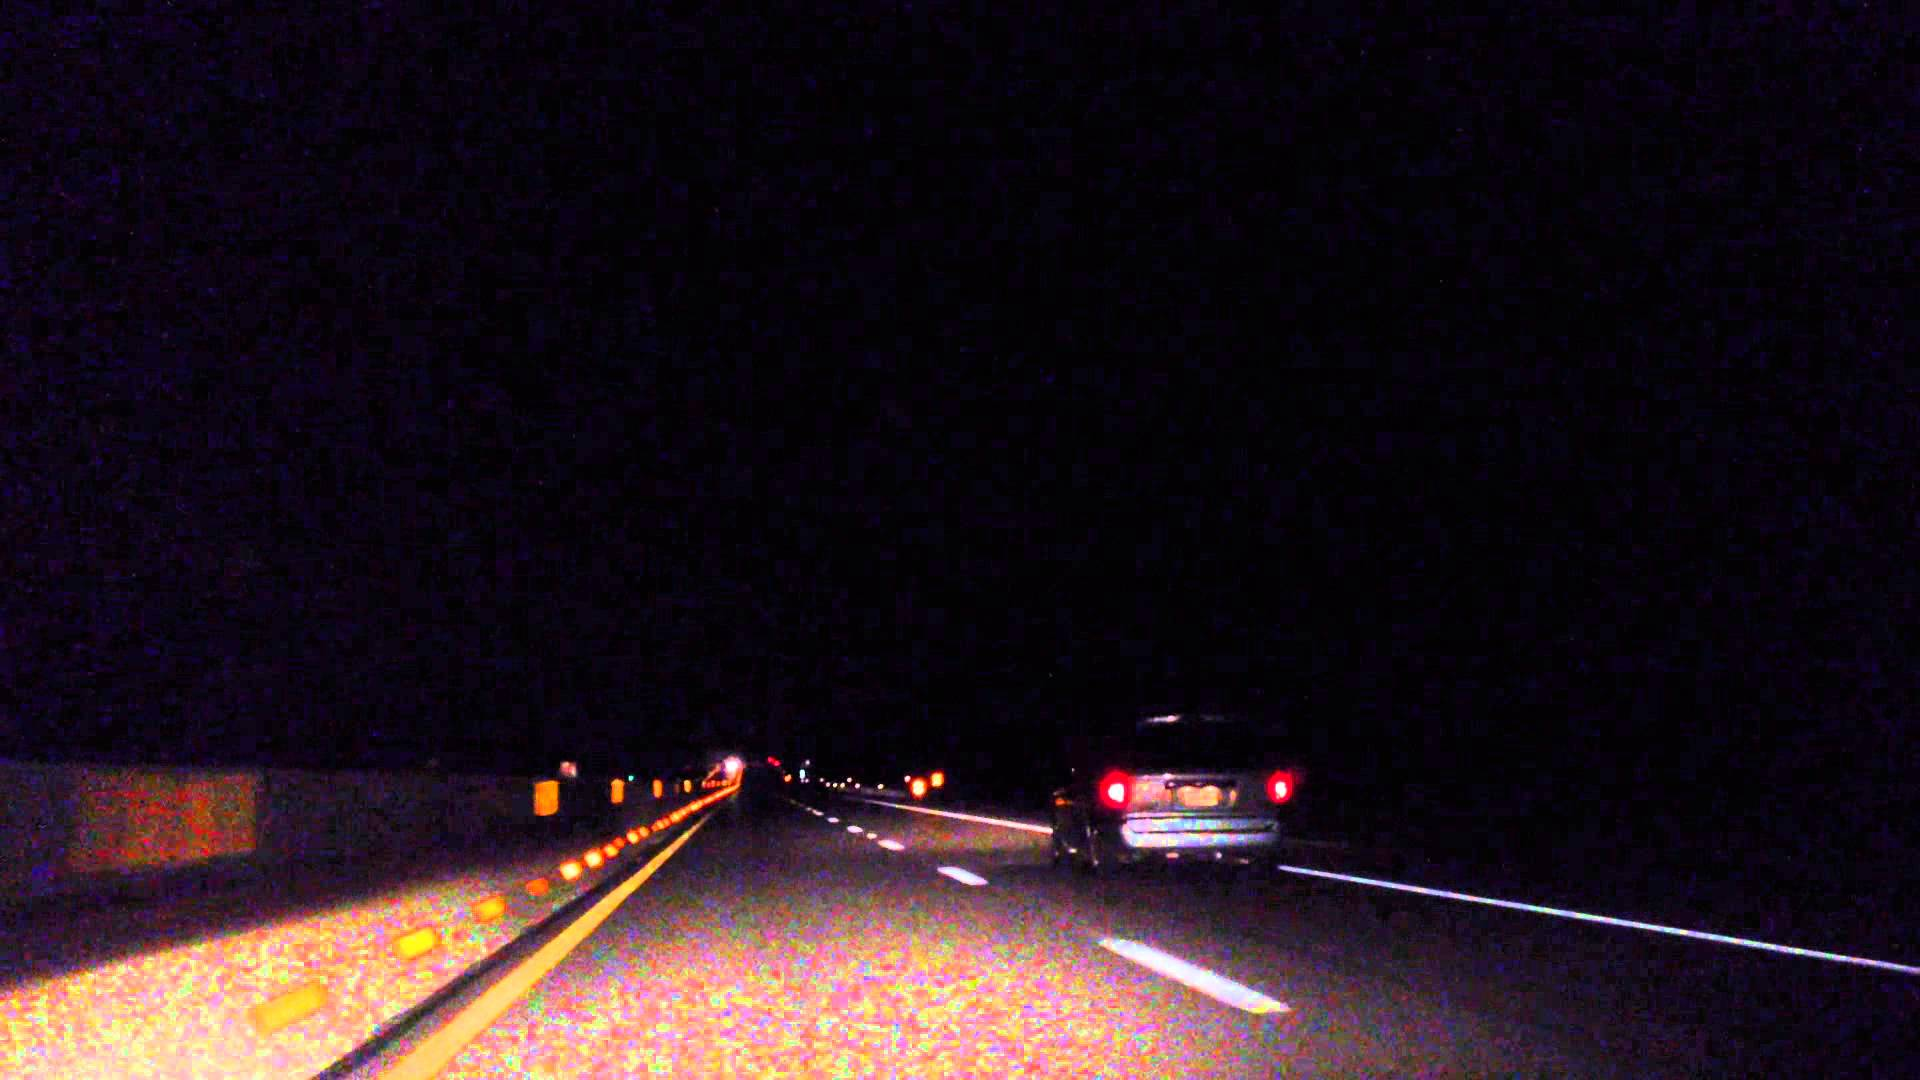 Driving Highway at Night, Perspective - YouTube